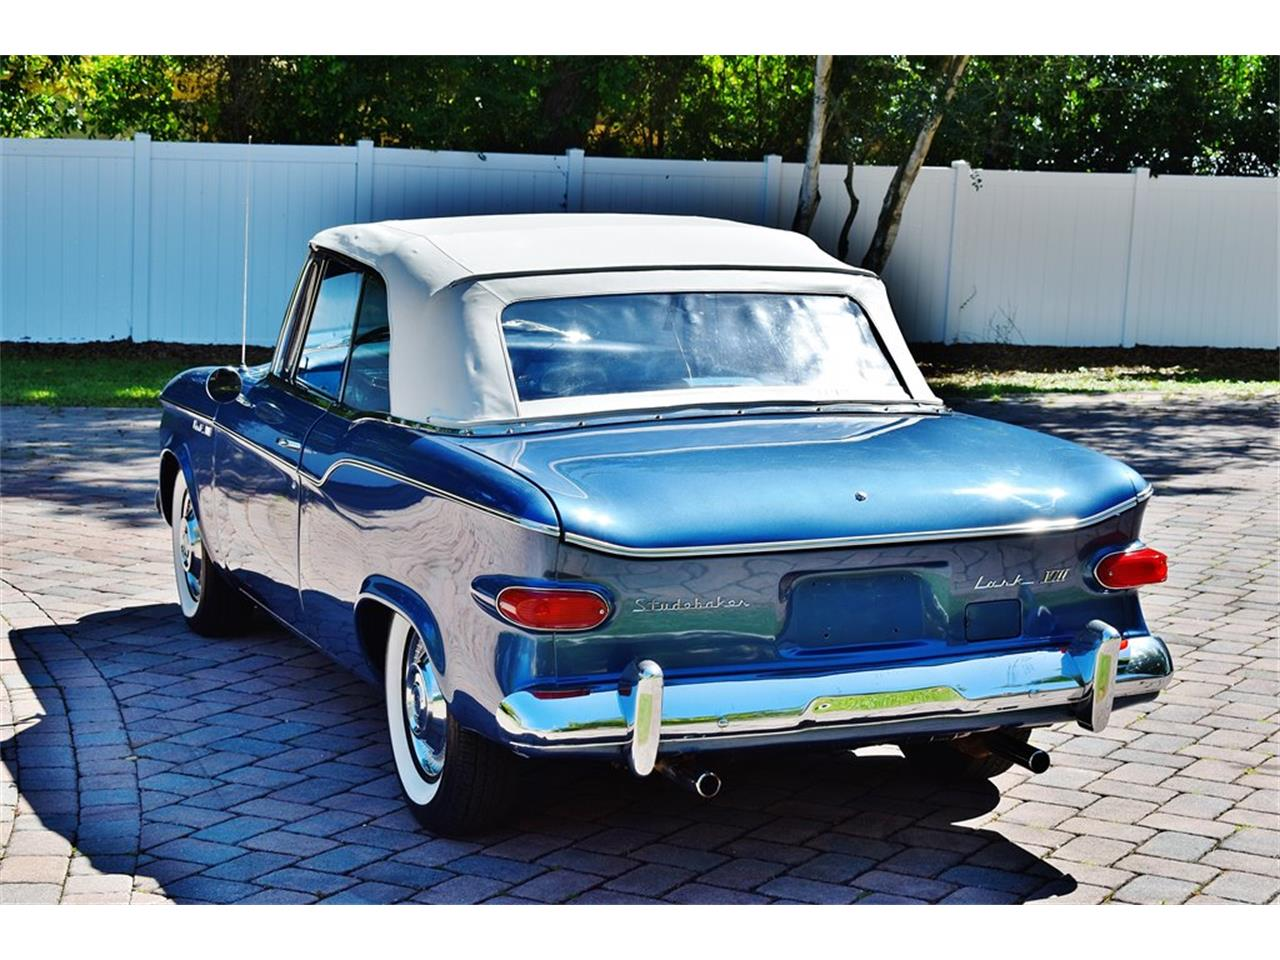 1960 Studebaker Lark for sale in Lakeland, FL – photo 3